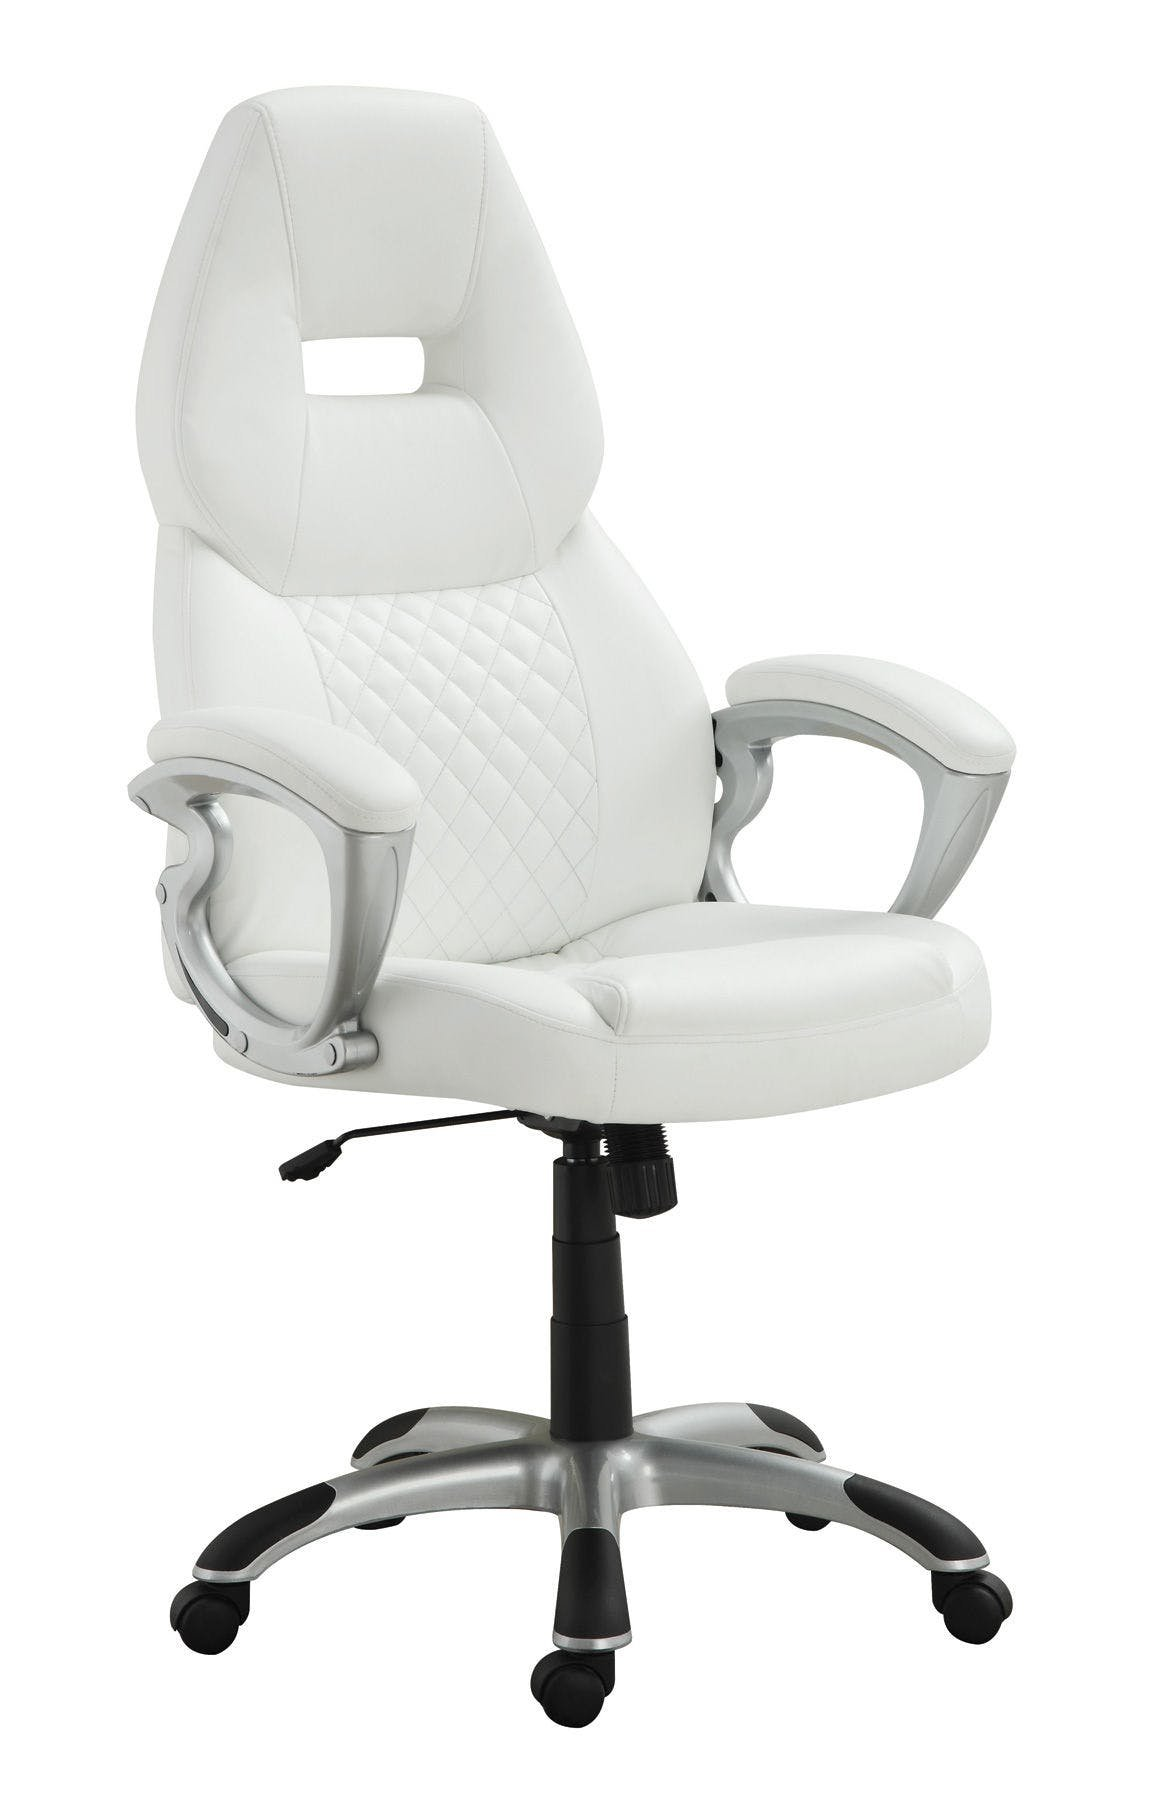 Coaster 800150 Home Furnishings Office Chair, White